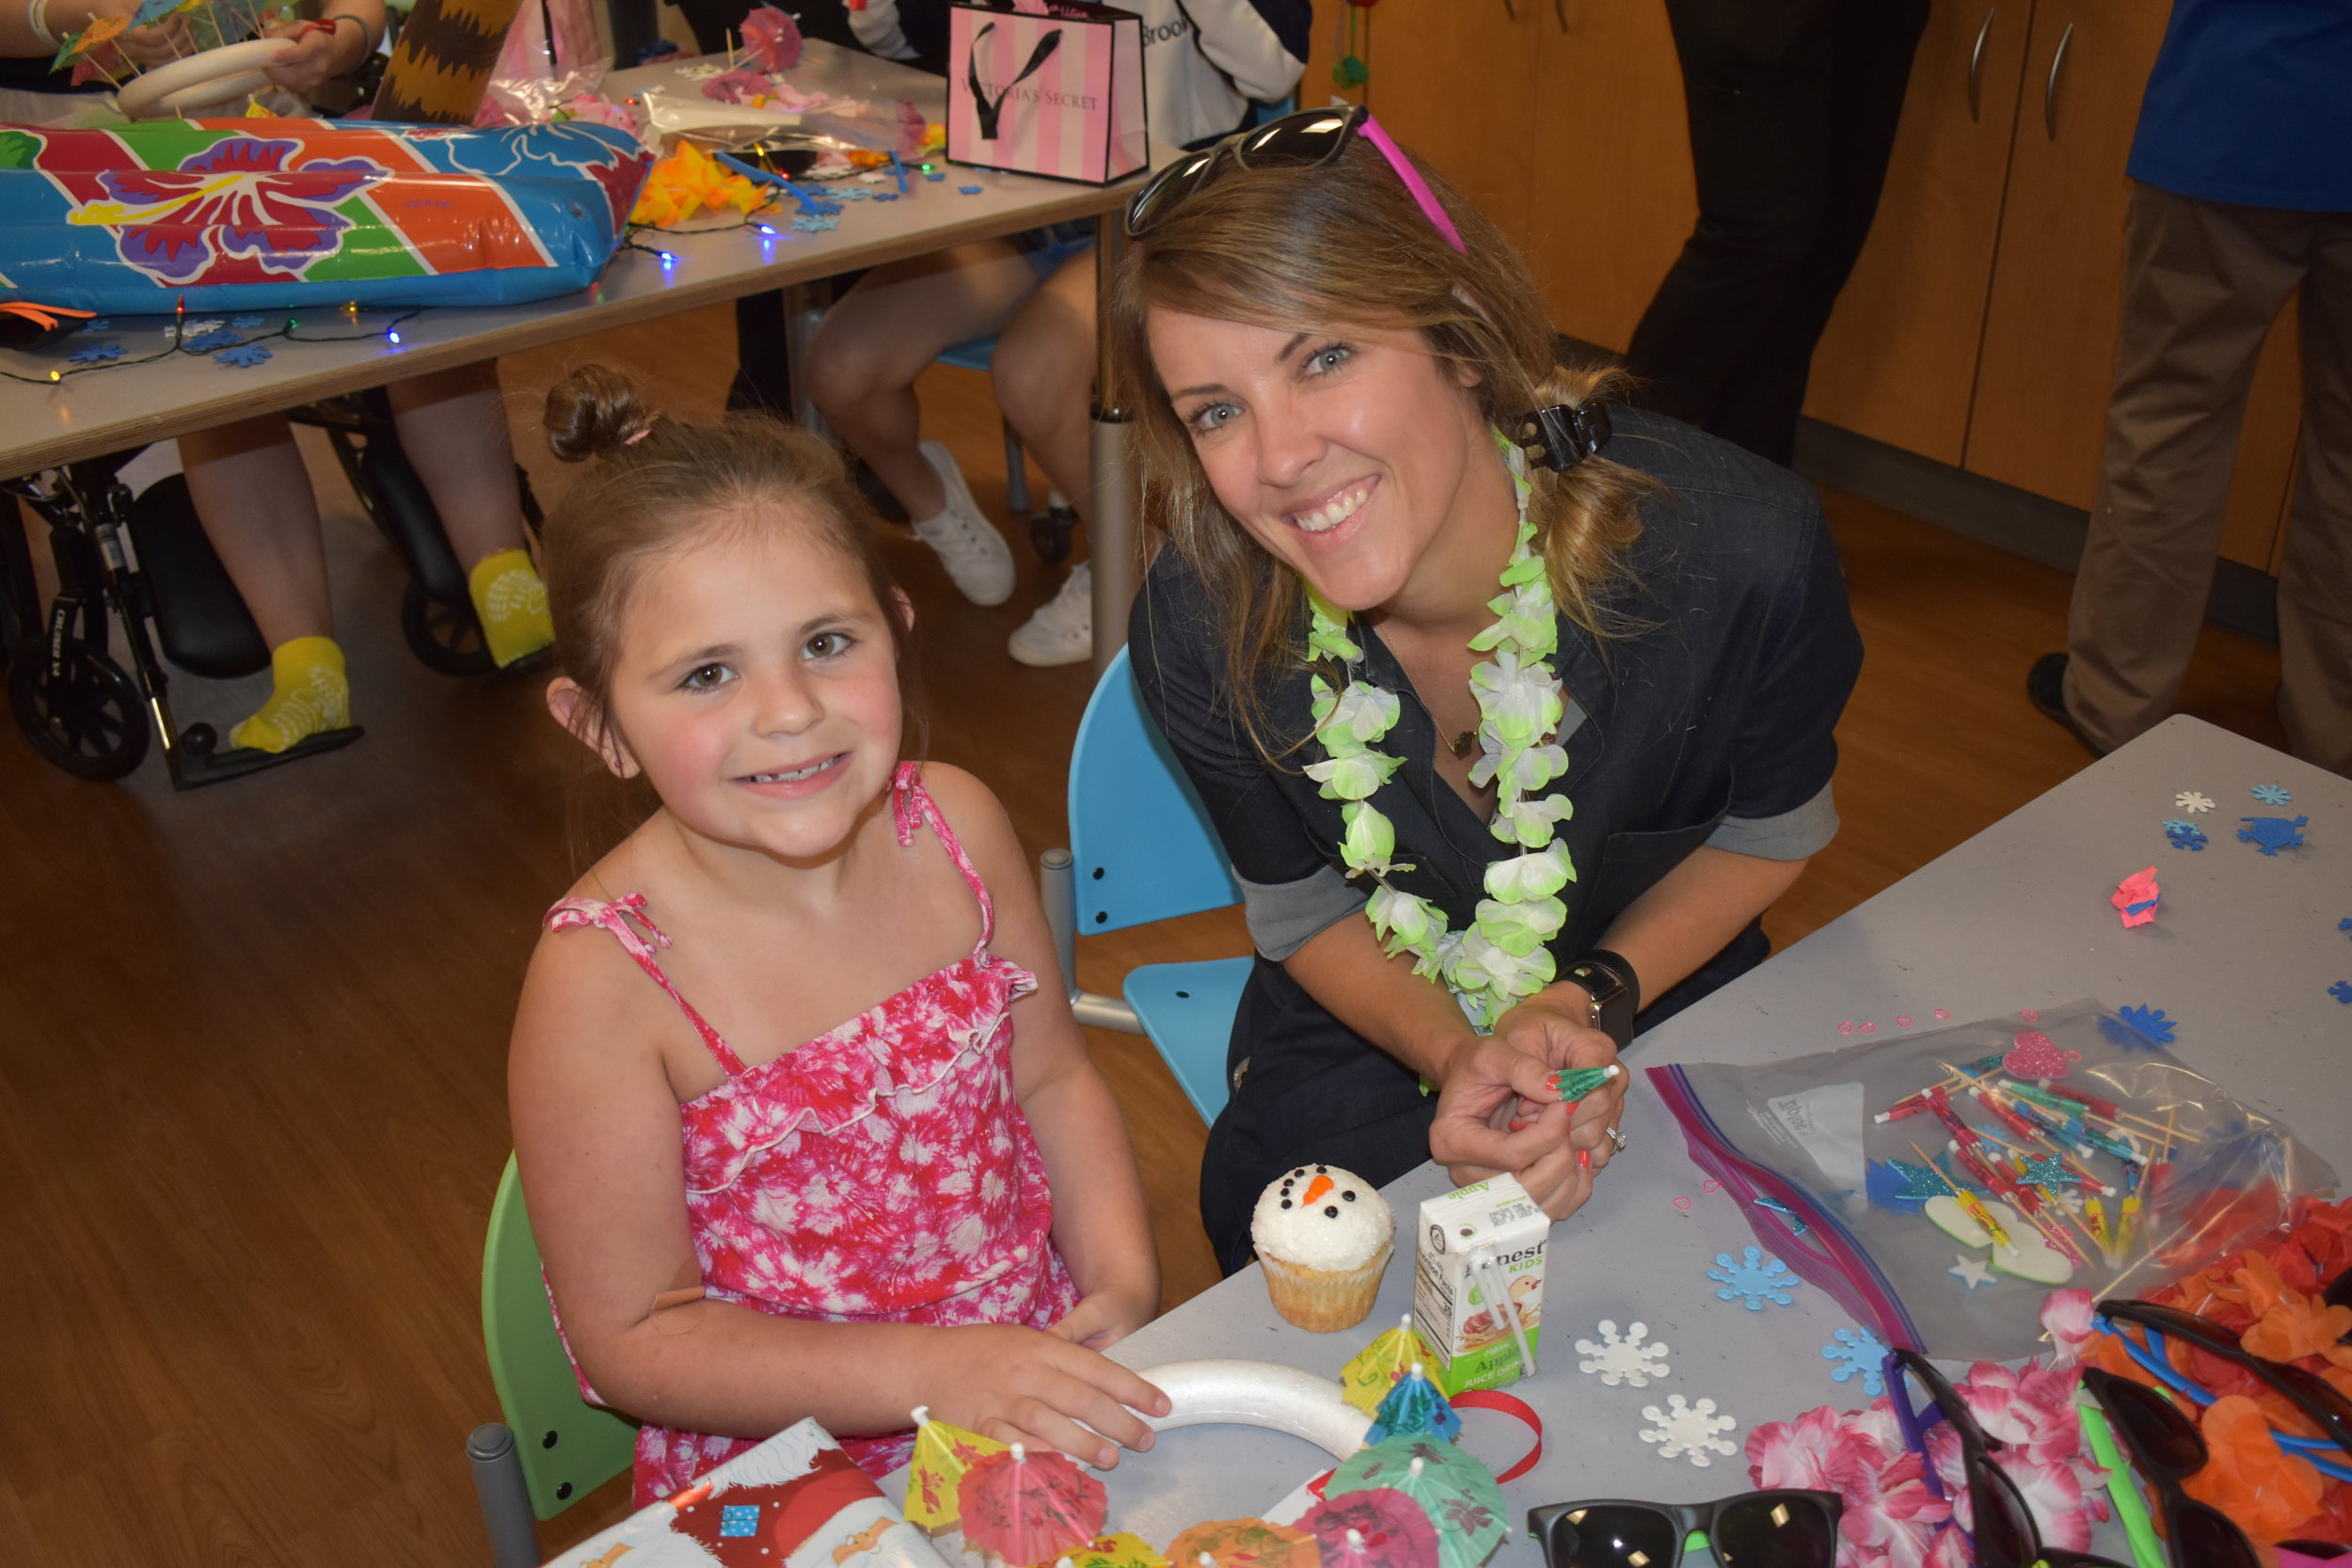 Leigh Ann O'Neill celebrates Christmas in July with patients at Peyton Manning Children's Hospital as part of a new youth volunteer program.